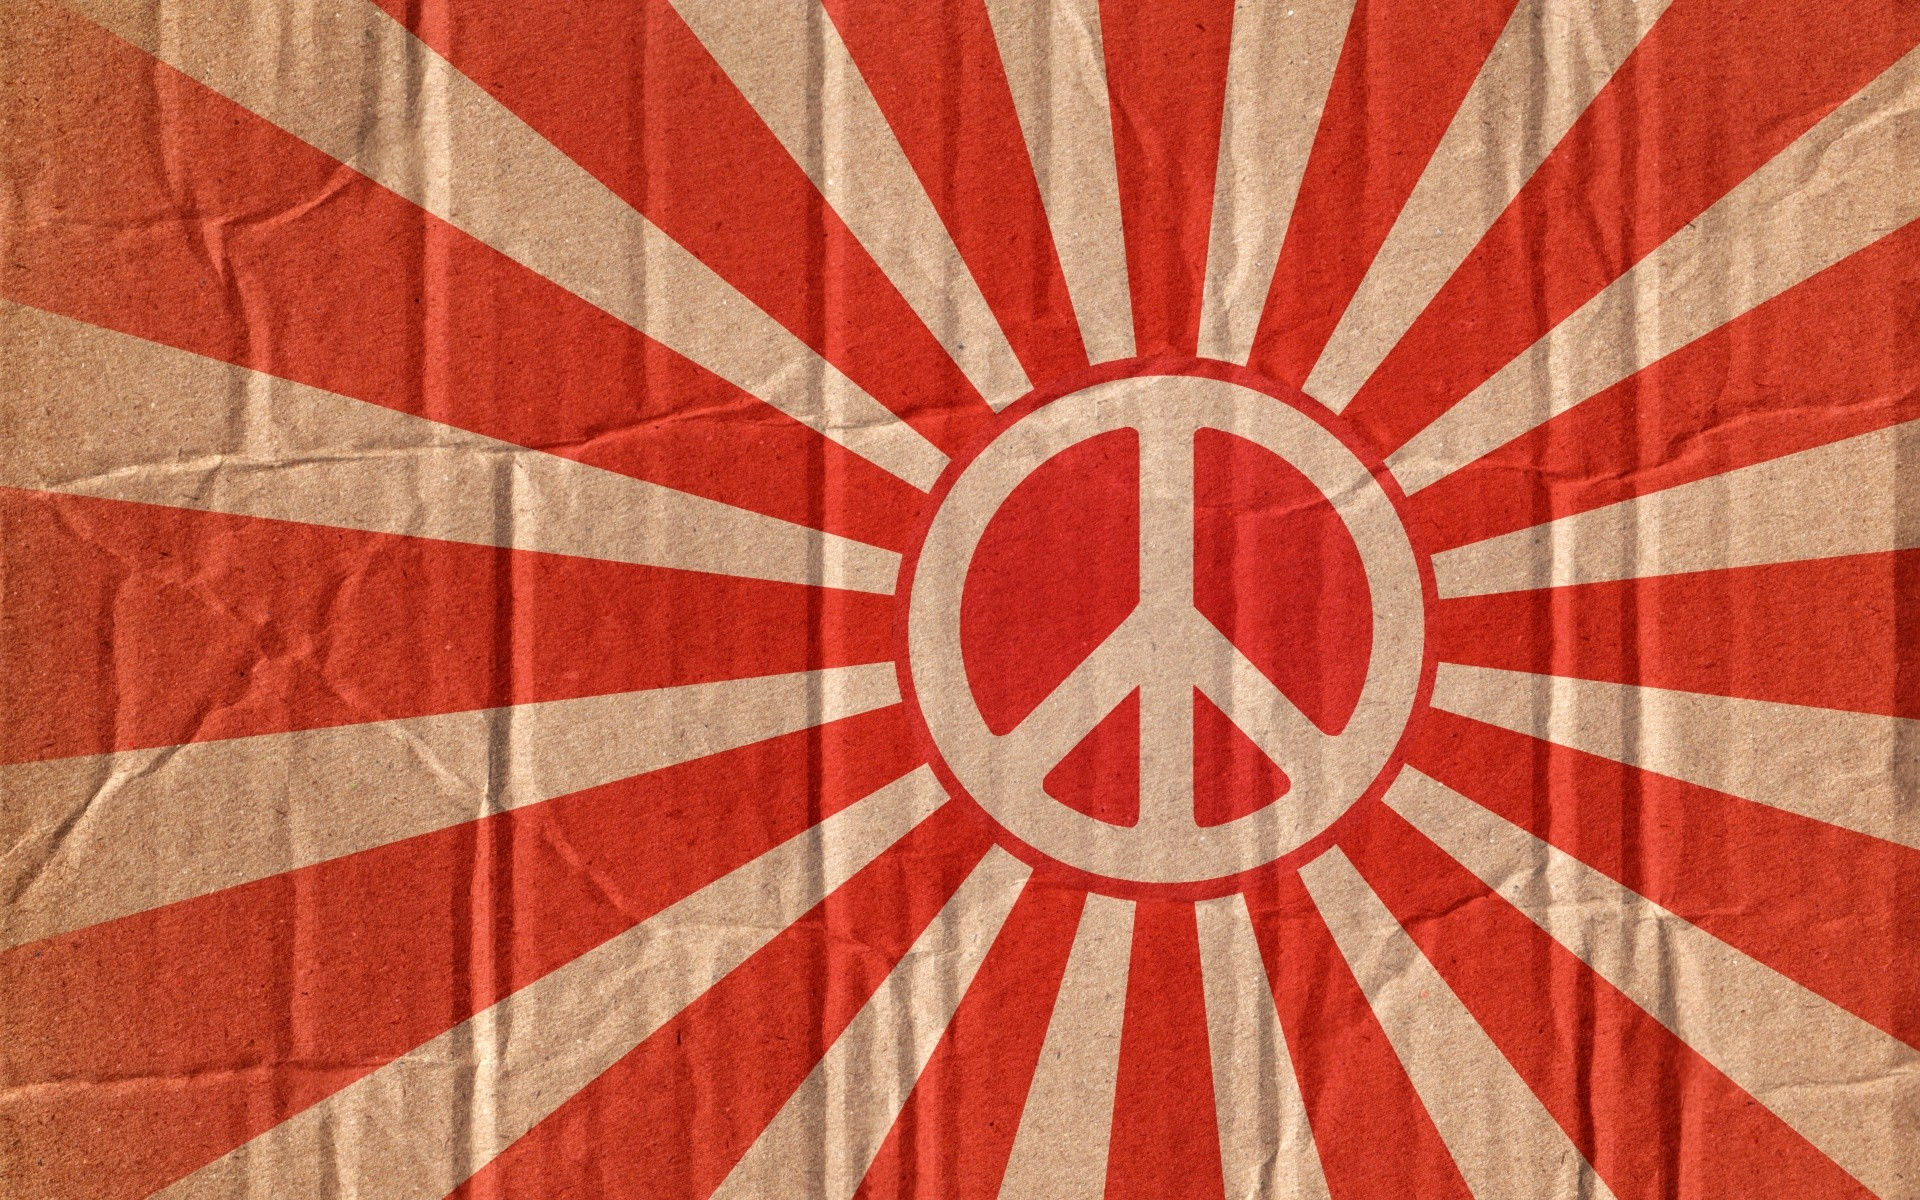 Peace sign desktop wallpaper 58 images 1920x1243 misc symbol psychedelic colorful colors hippie peace sign pattern wallpaper voltagebd Gallery